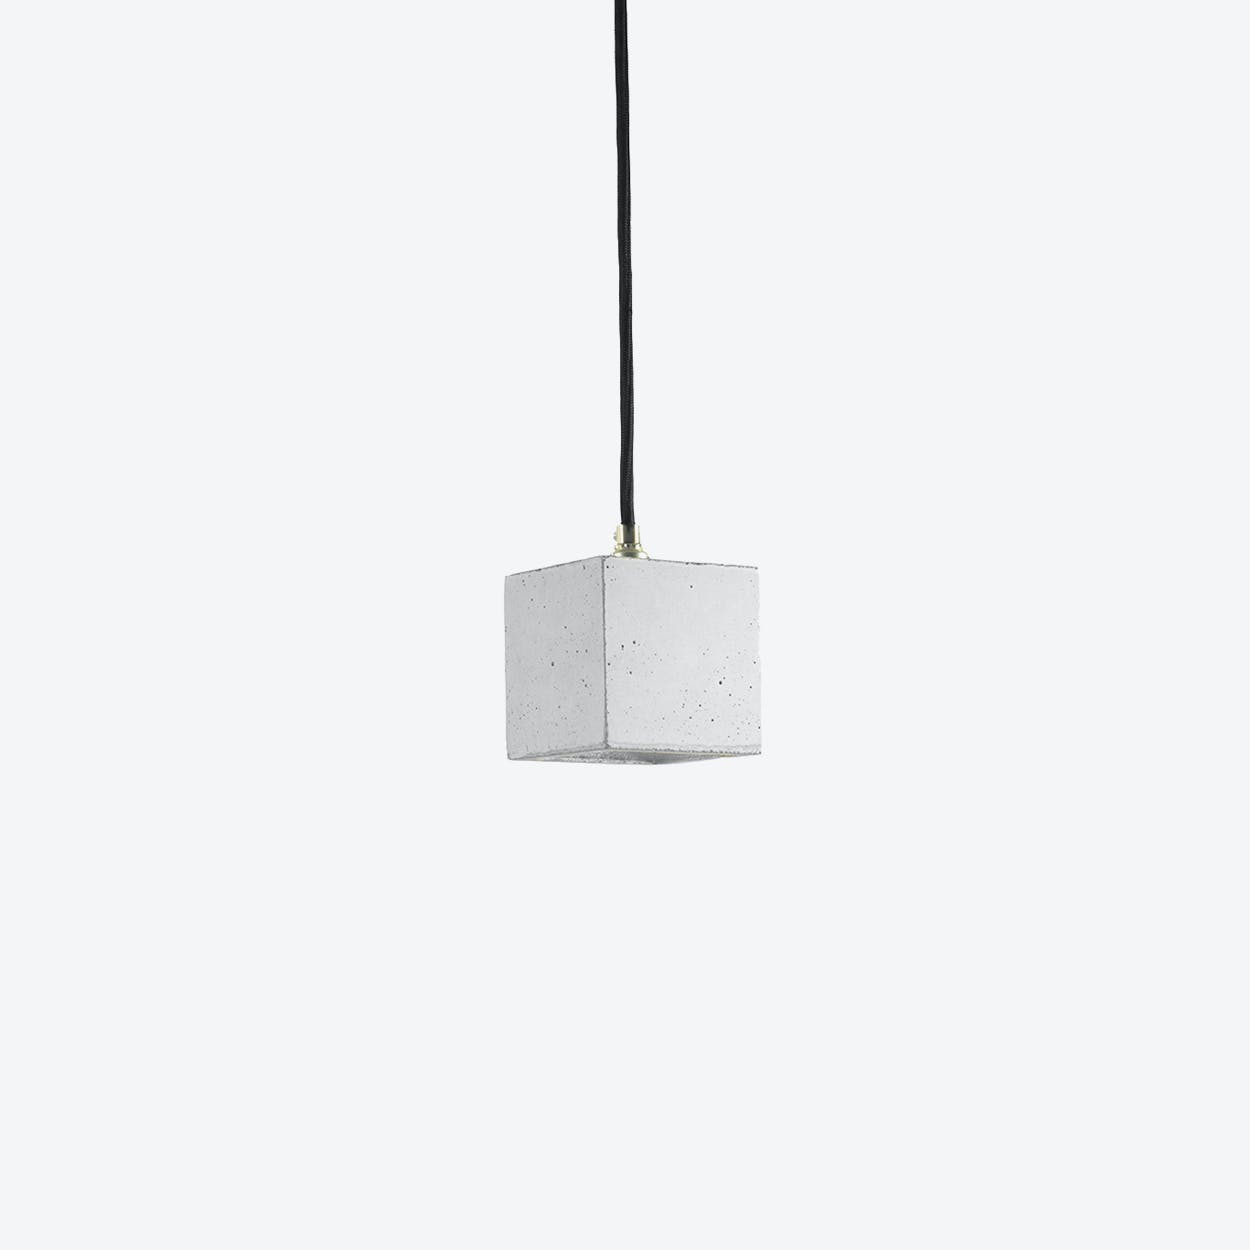 Concrete Pendant Light Cubic Small B6 in Light Grey and Silver